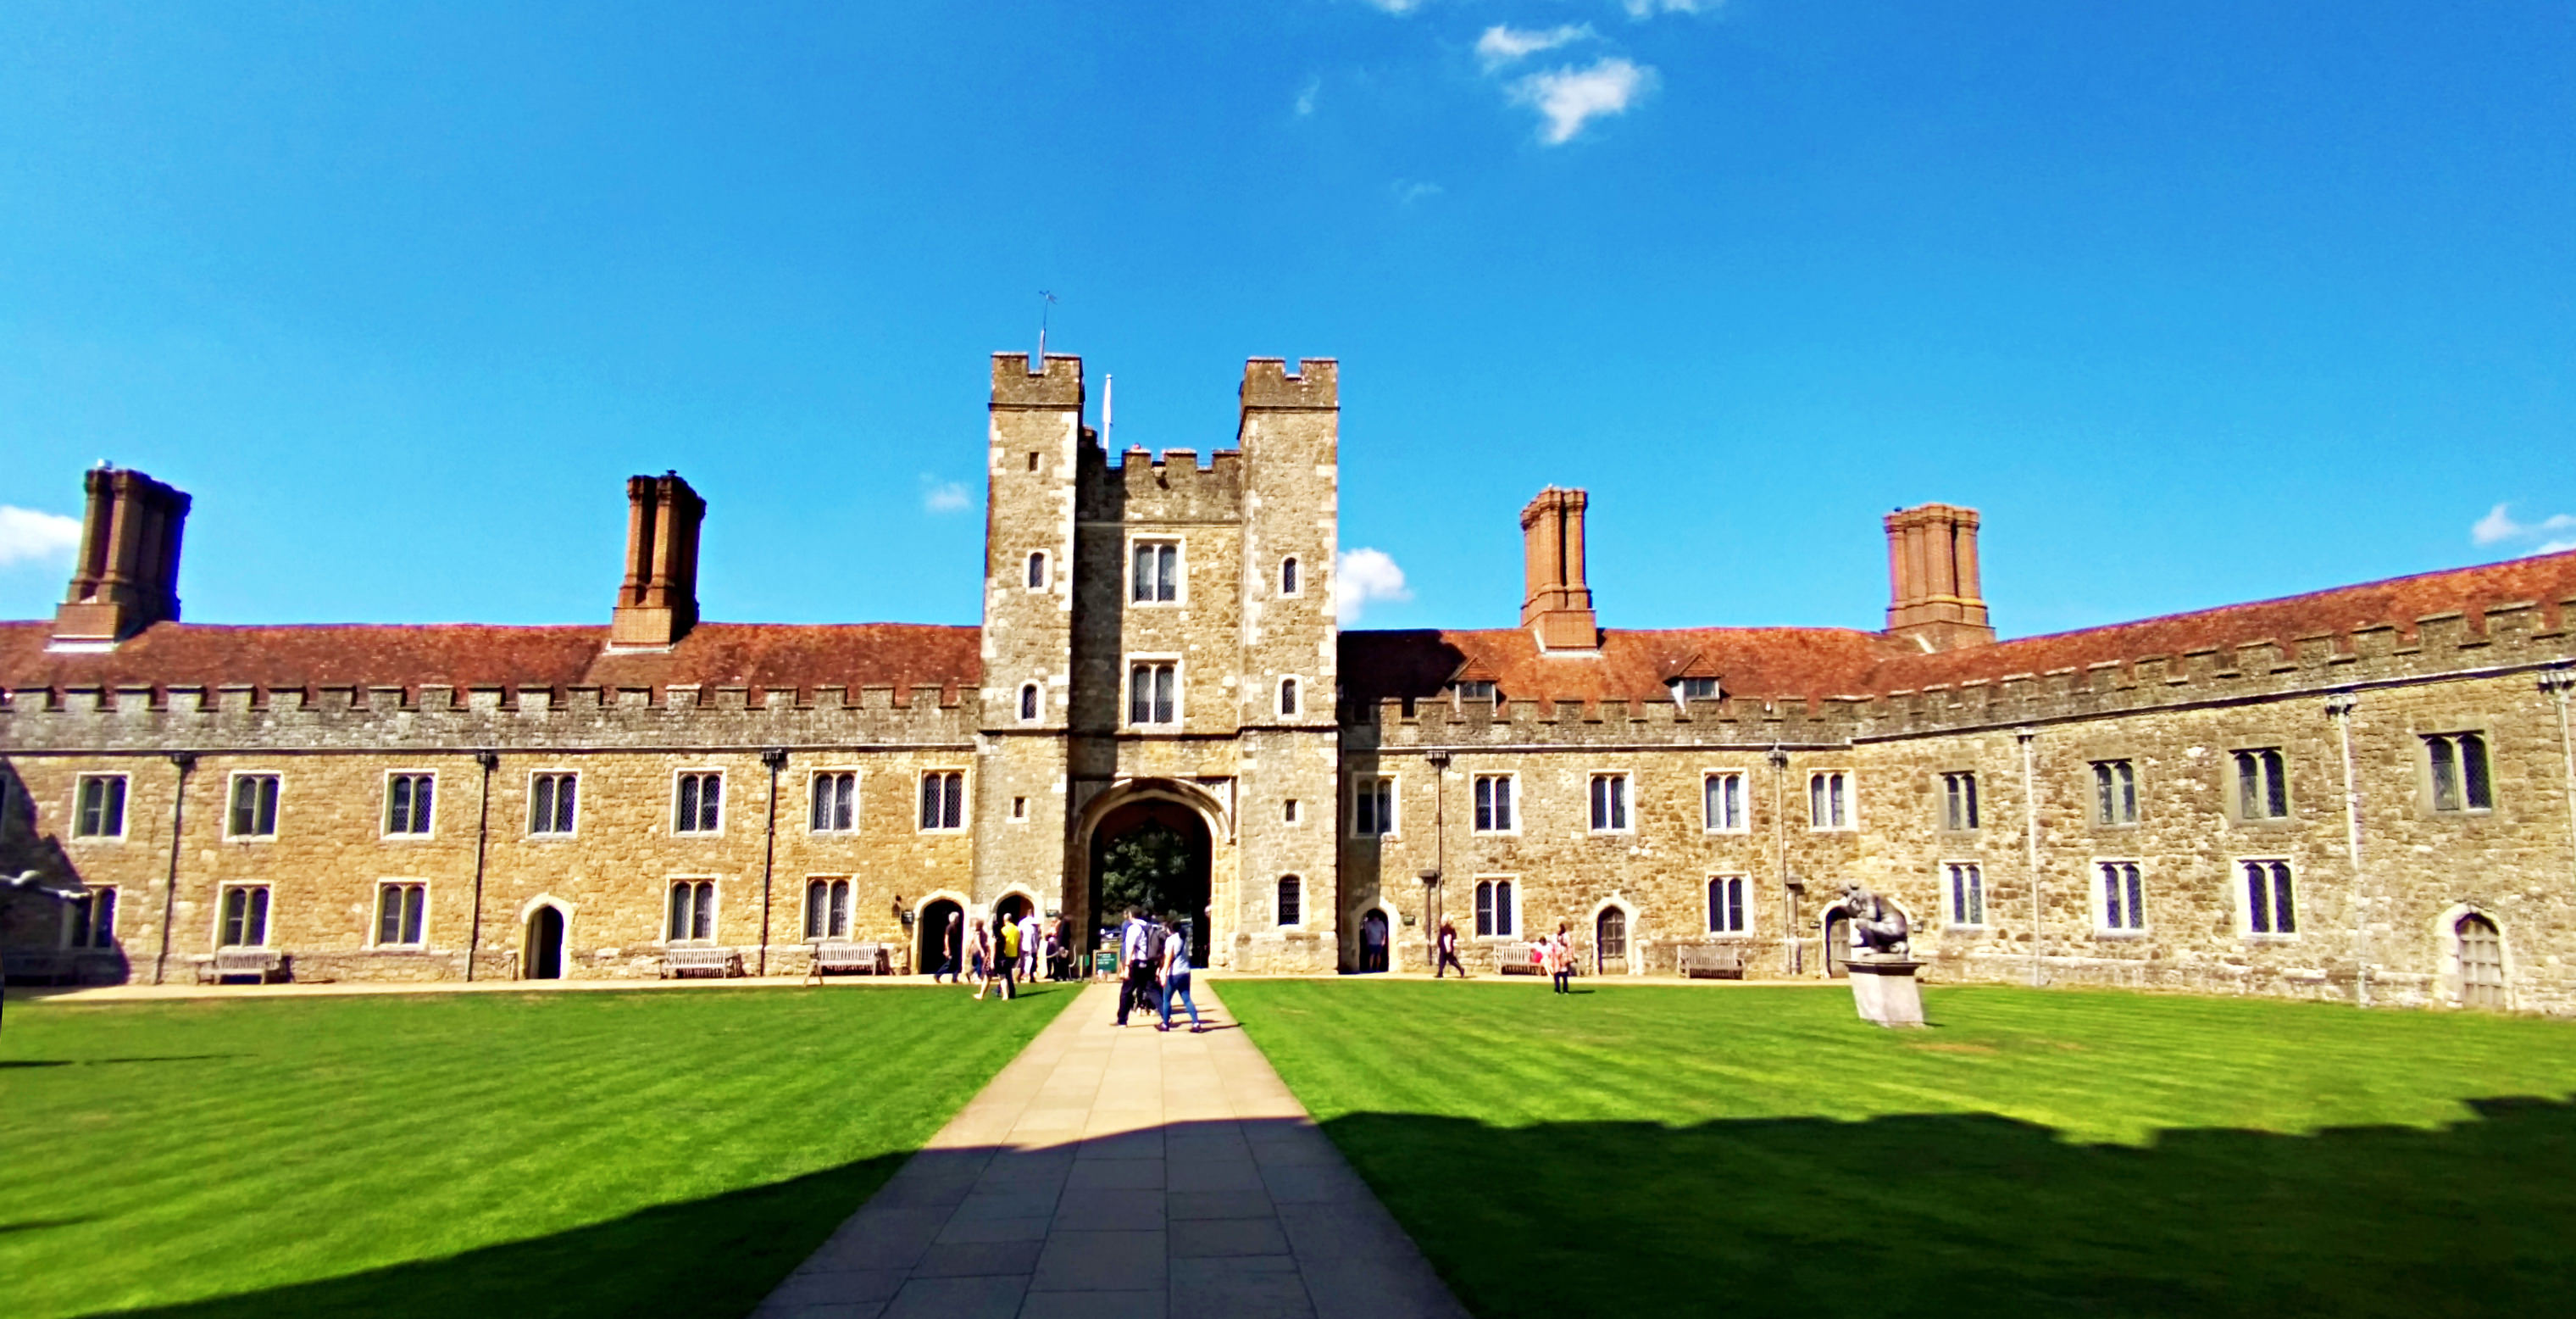 Knole, the country house